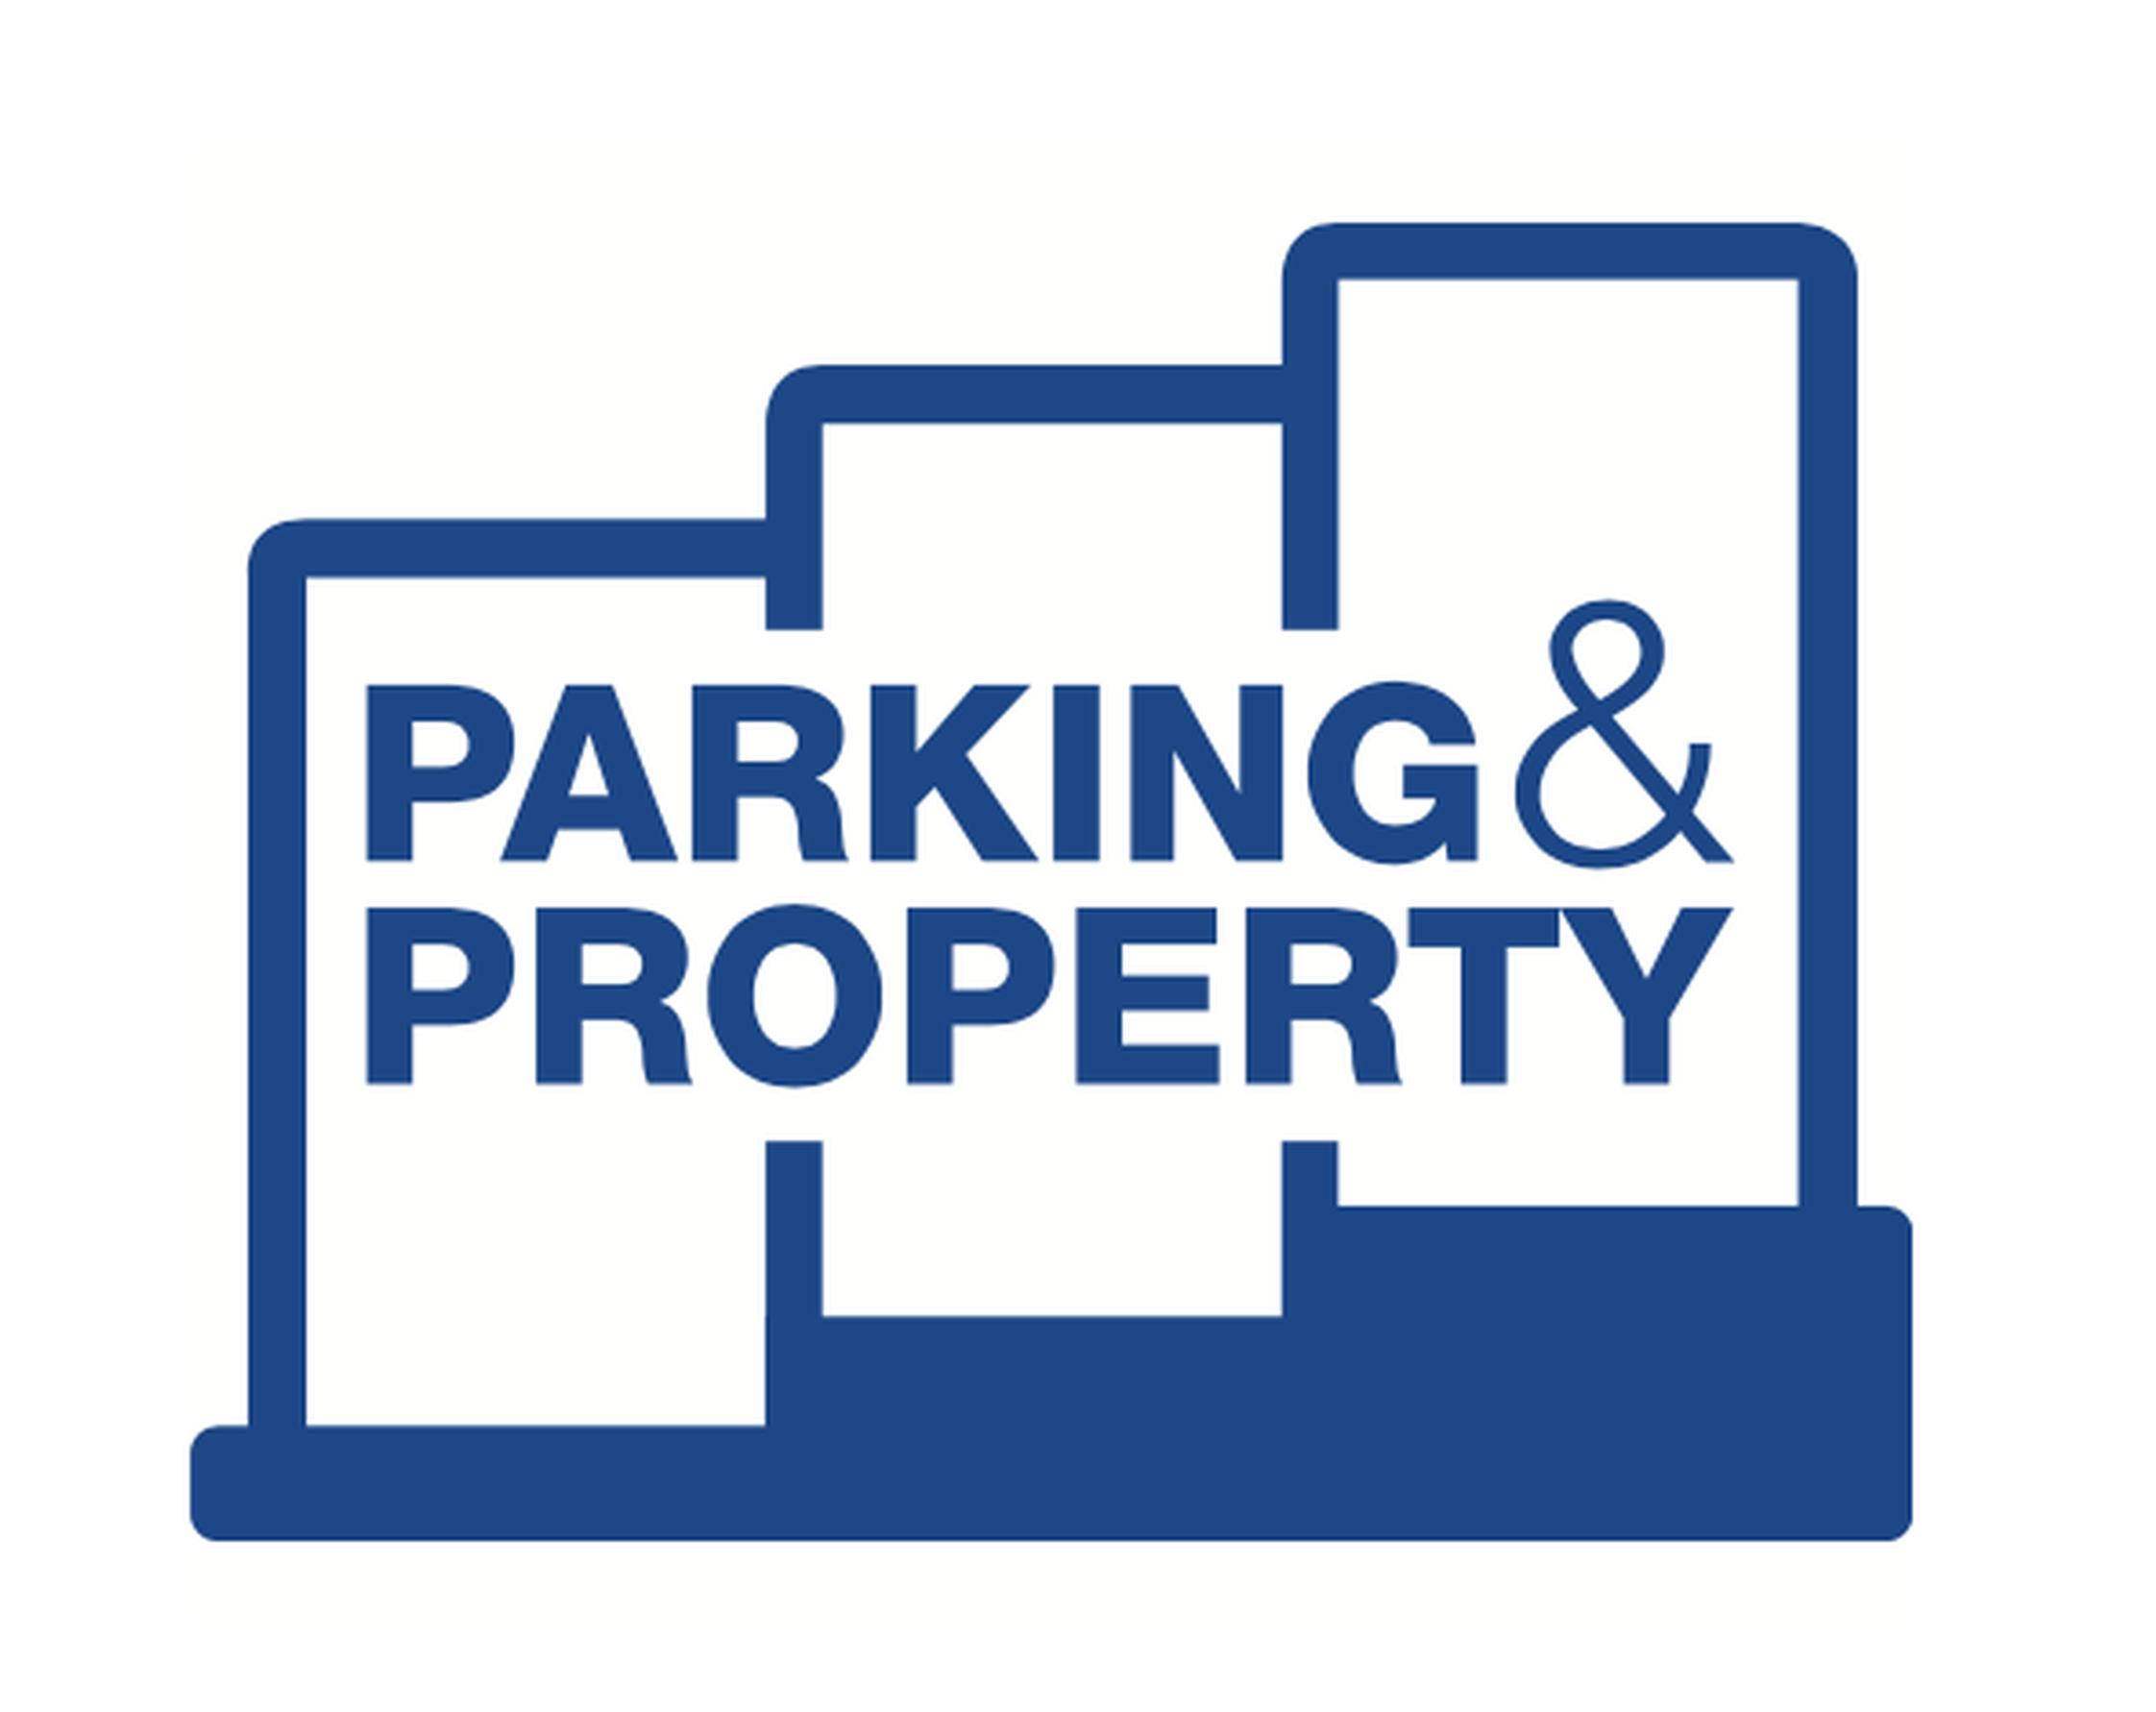 Parking & Property takes place on 8 June